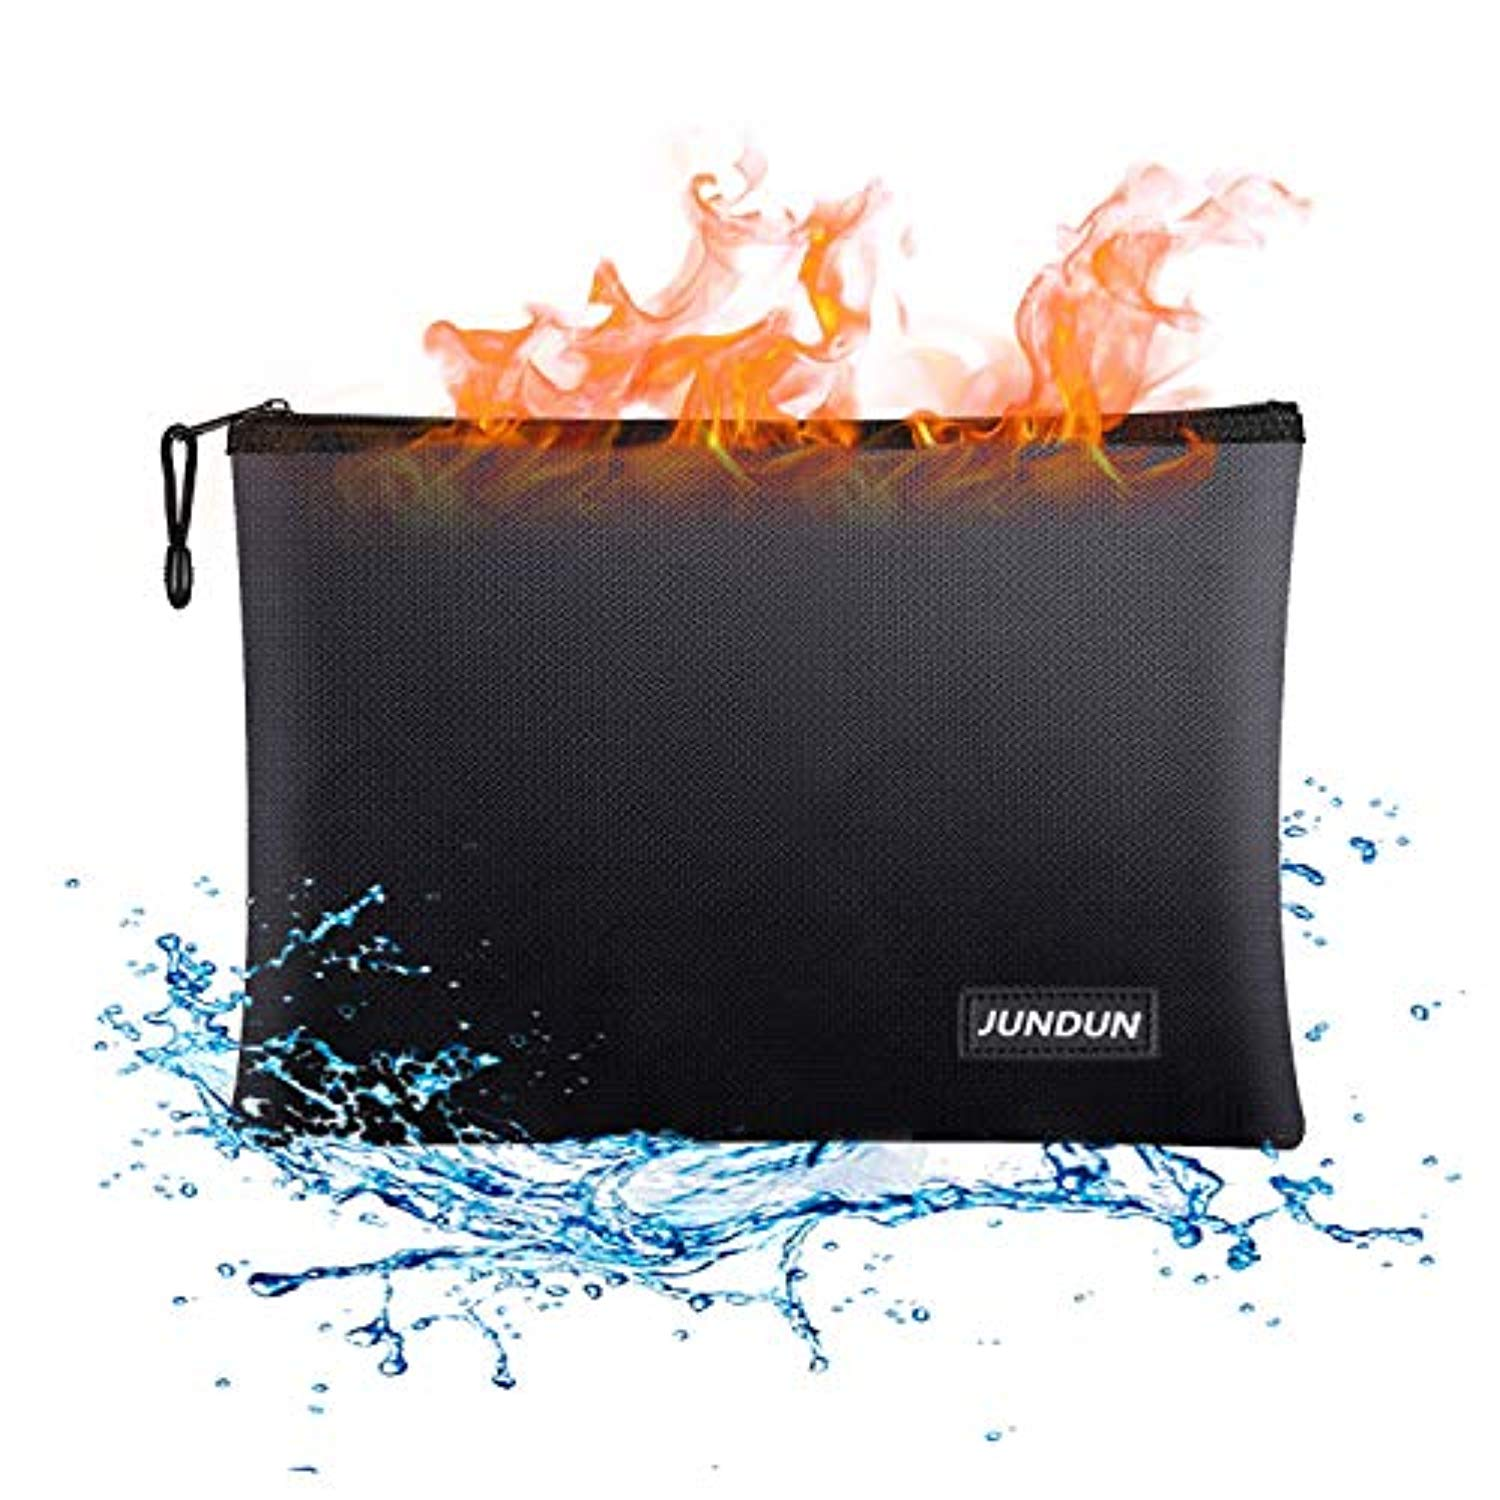 "13.4""x 9.4""Waterproof and Fireproof Storage Pouch for File,Cash and Tablet"